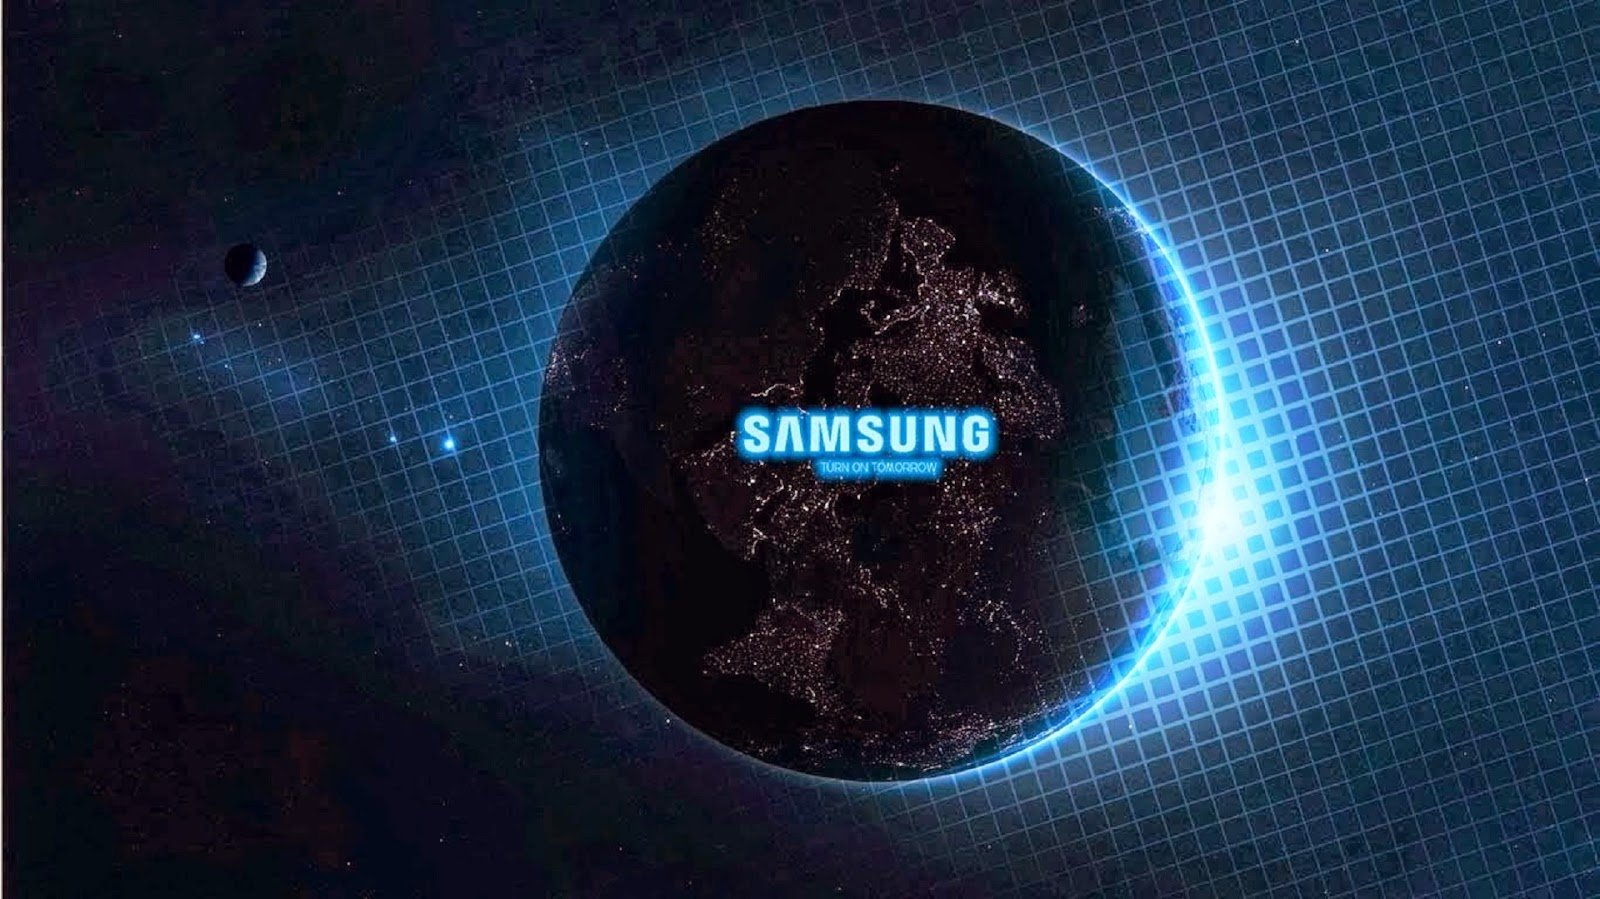 Samsung Wallpaper Hd Group: [67+] Samsung Logo Wallpaper On WallpaperSafari